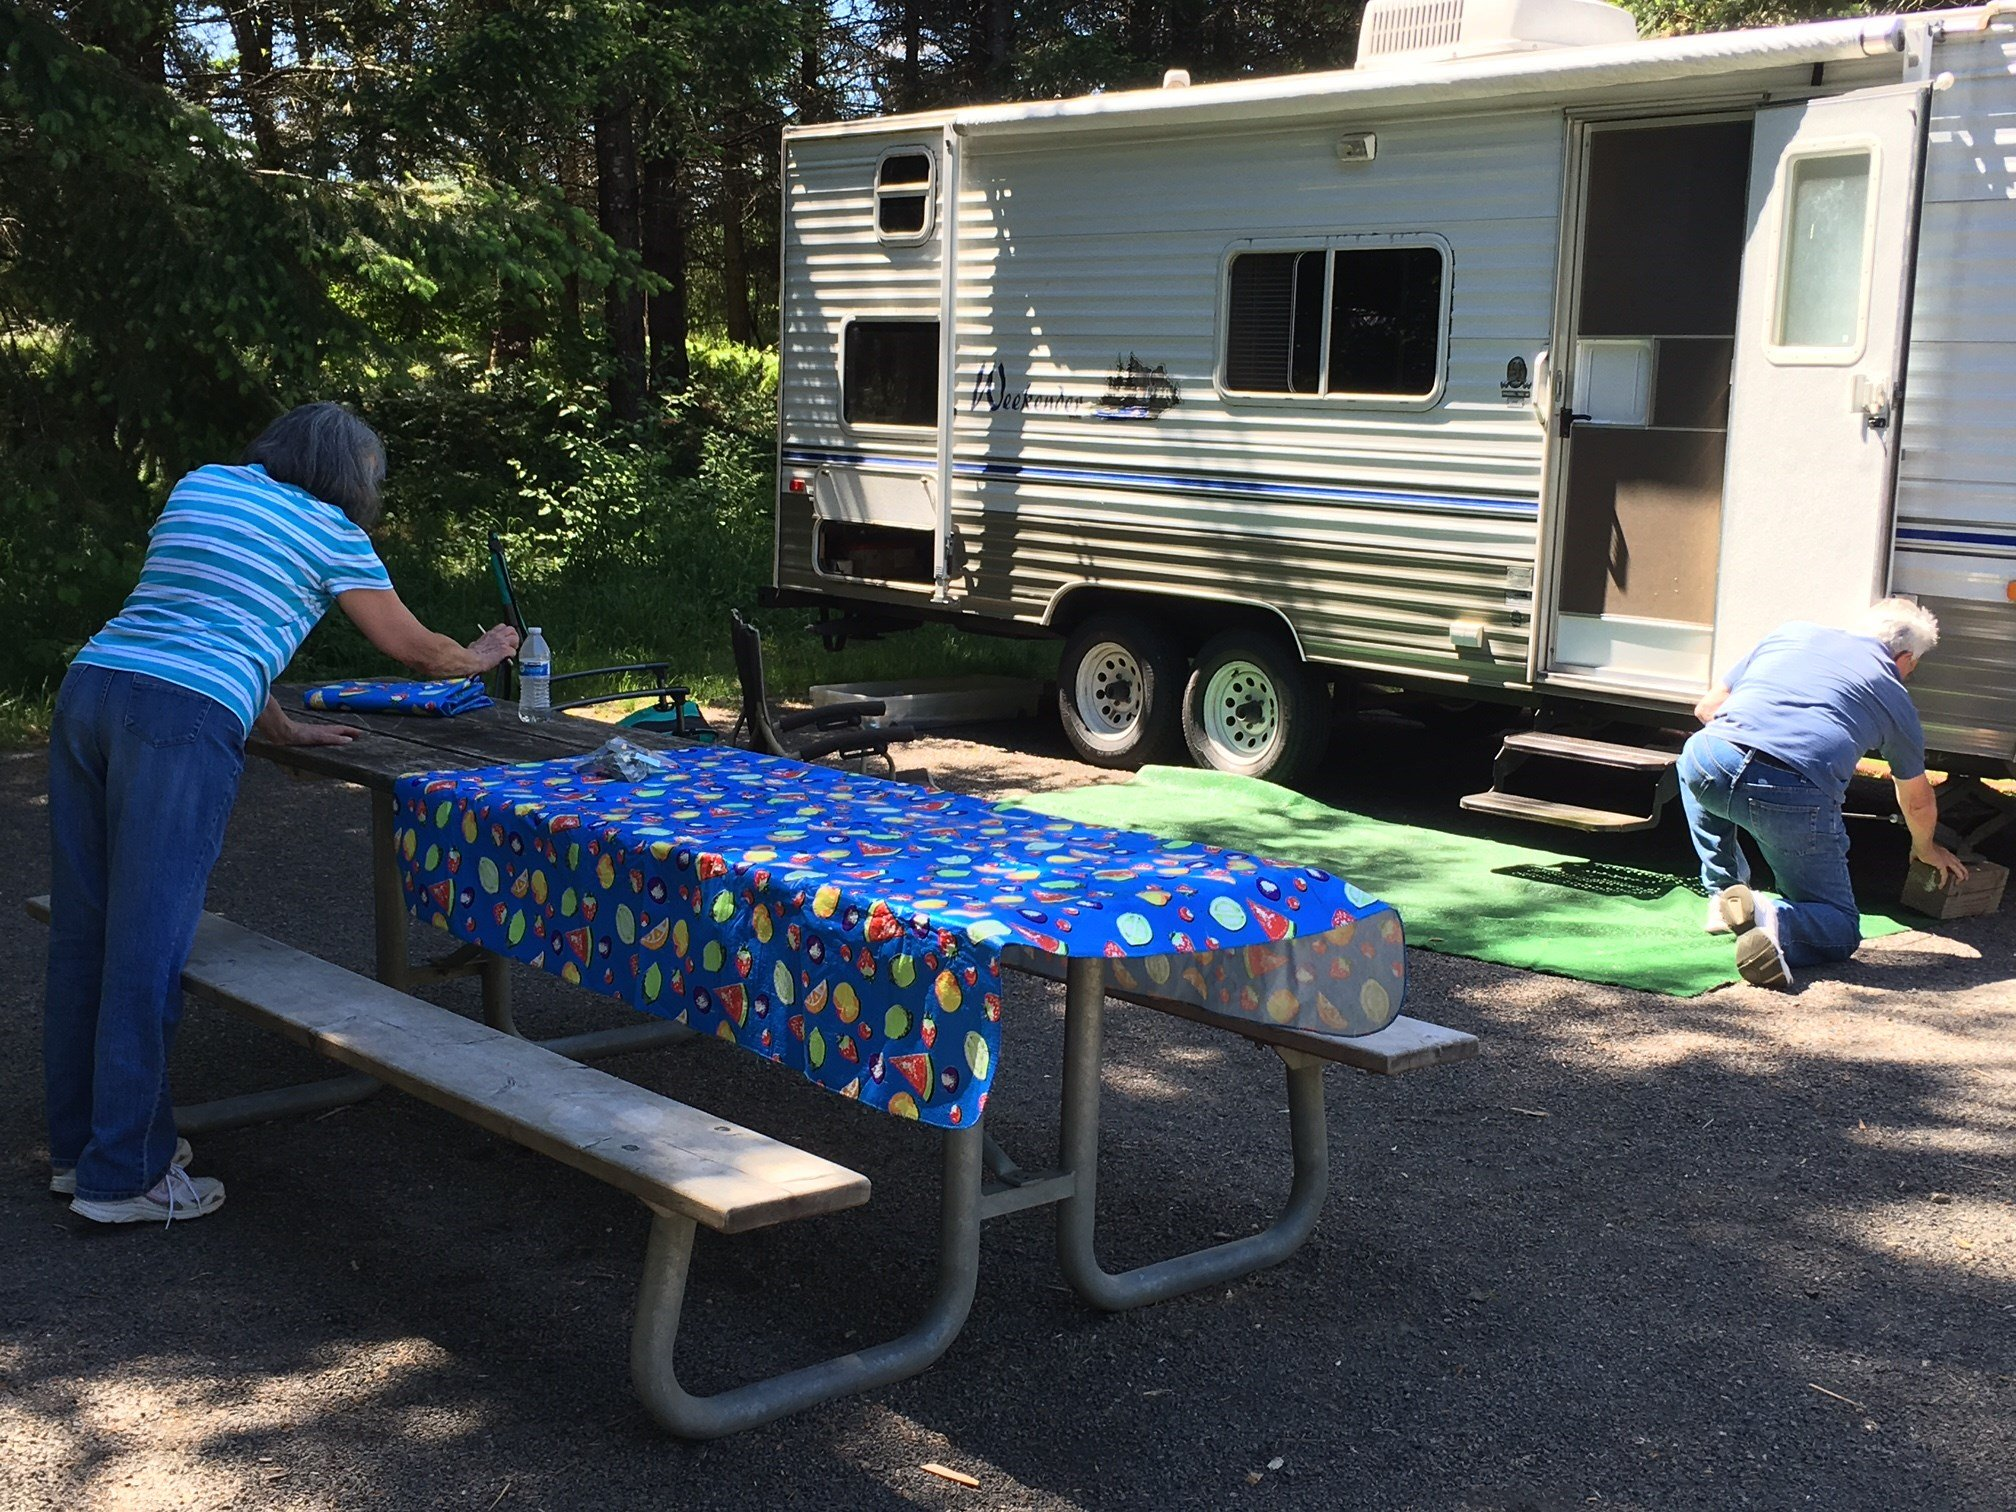 Campers setting up at L.L. Stub Stewart State Park on Thursday.